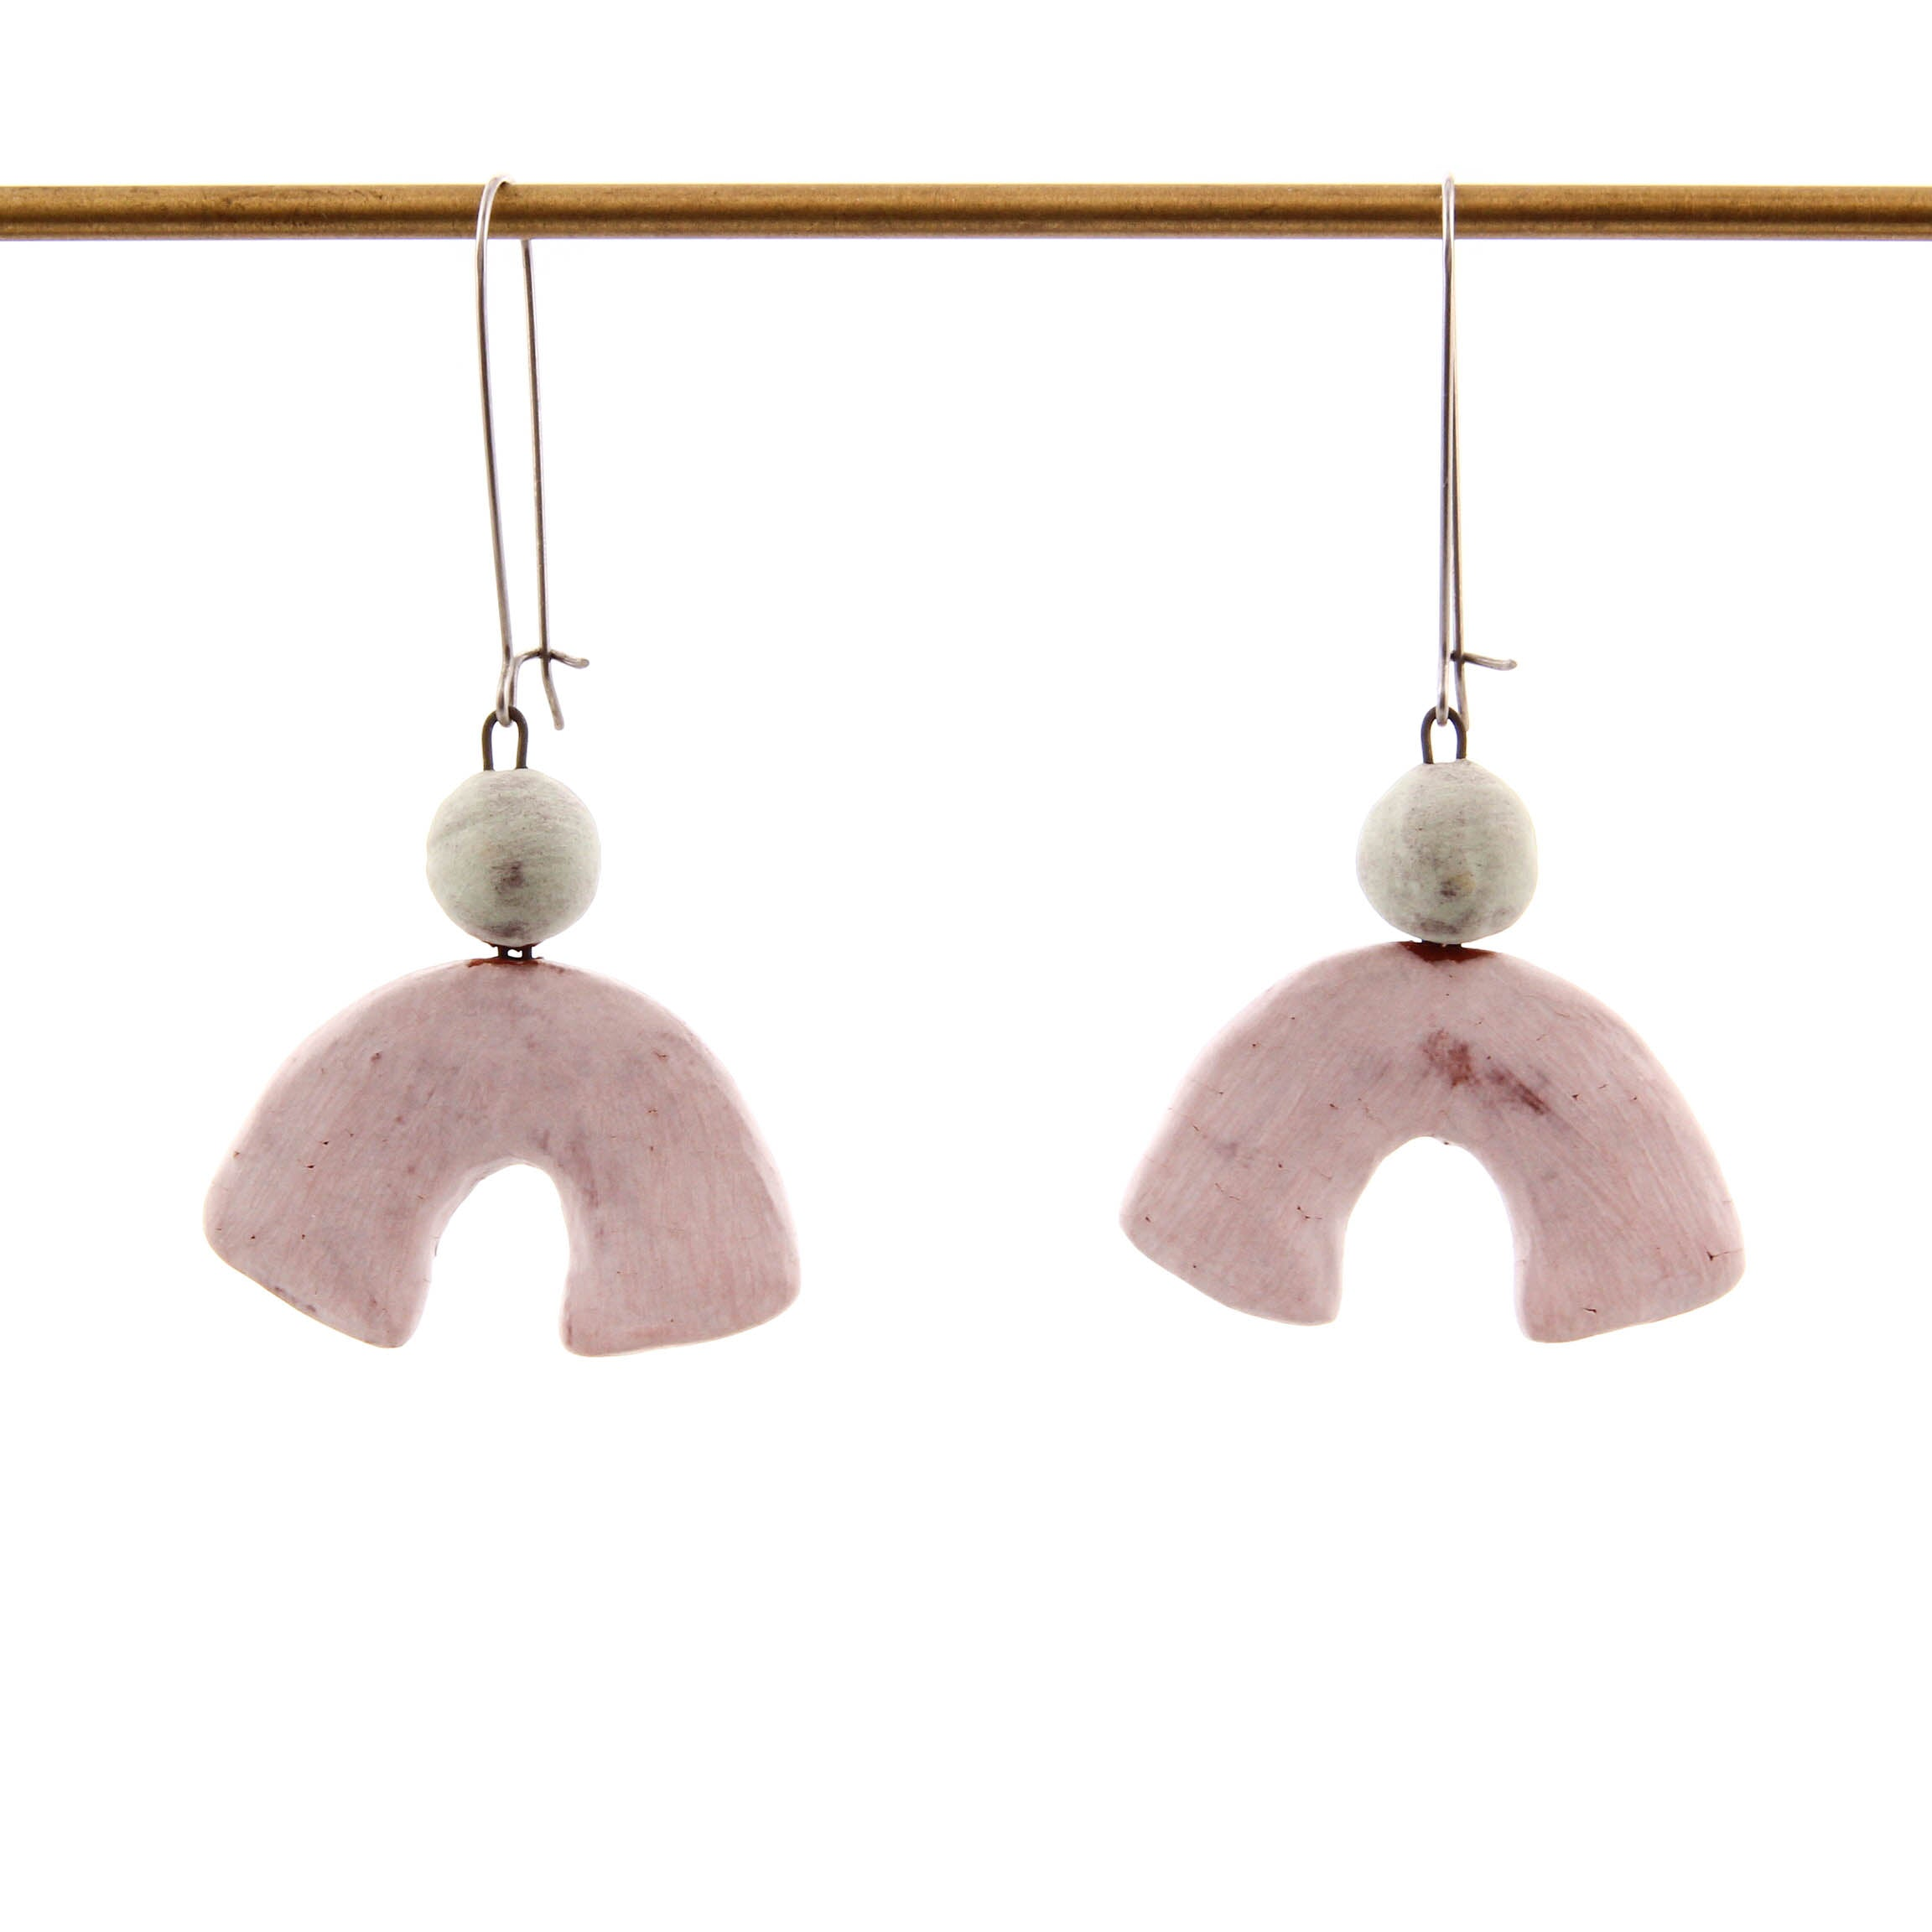 Tara Underwood, Arches Earrings in Pink and White